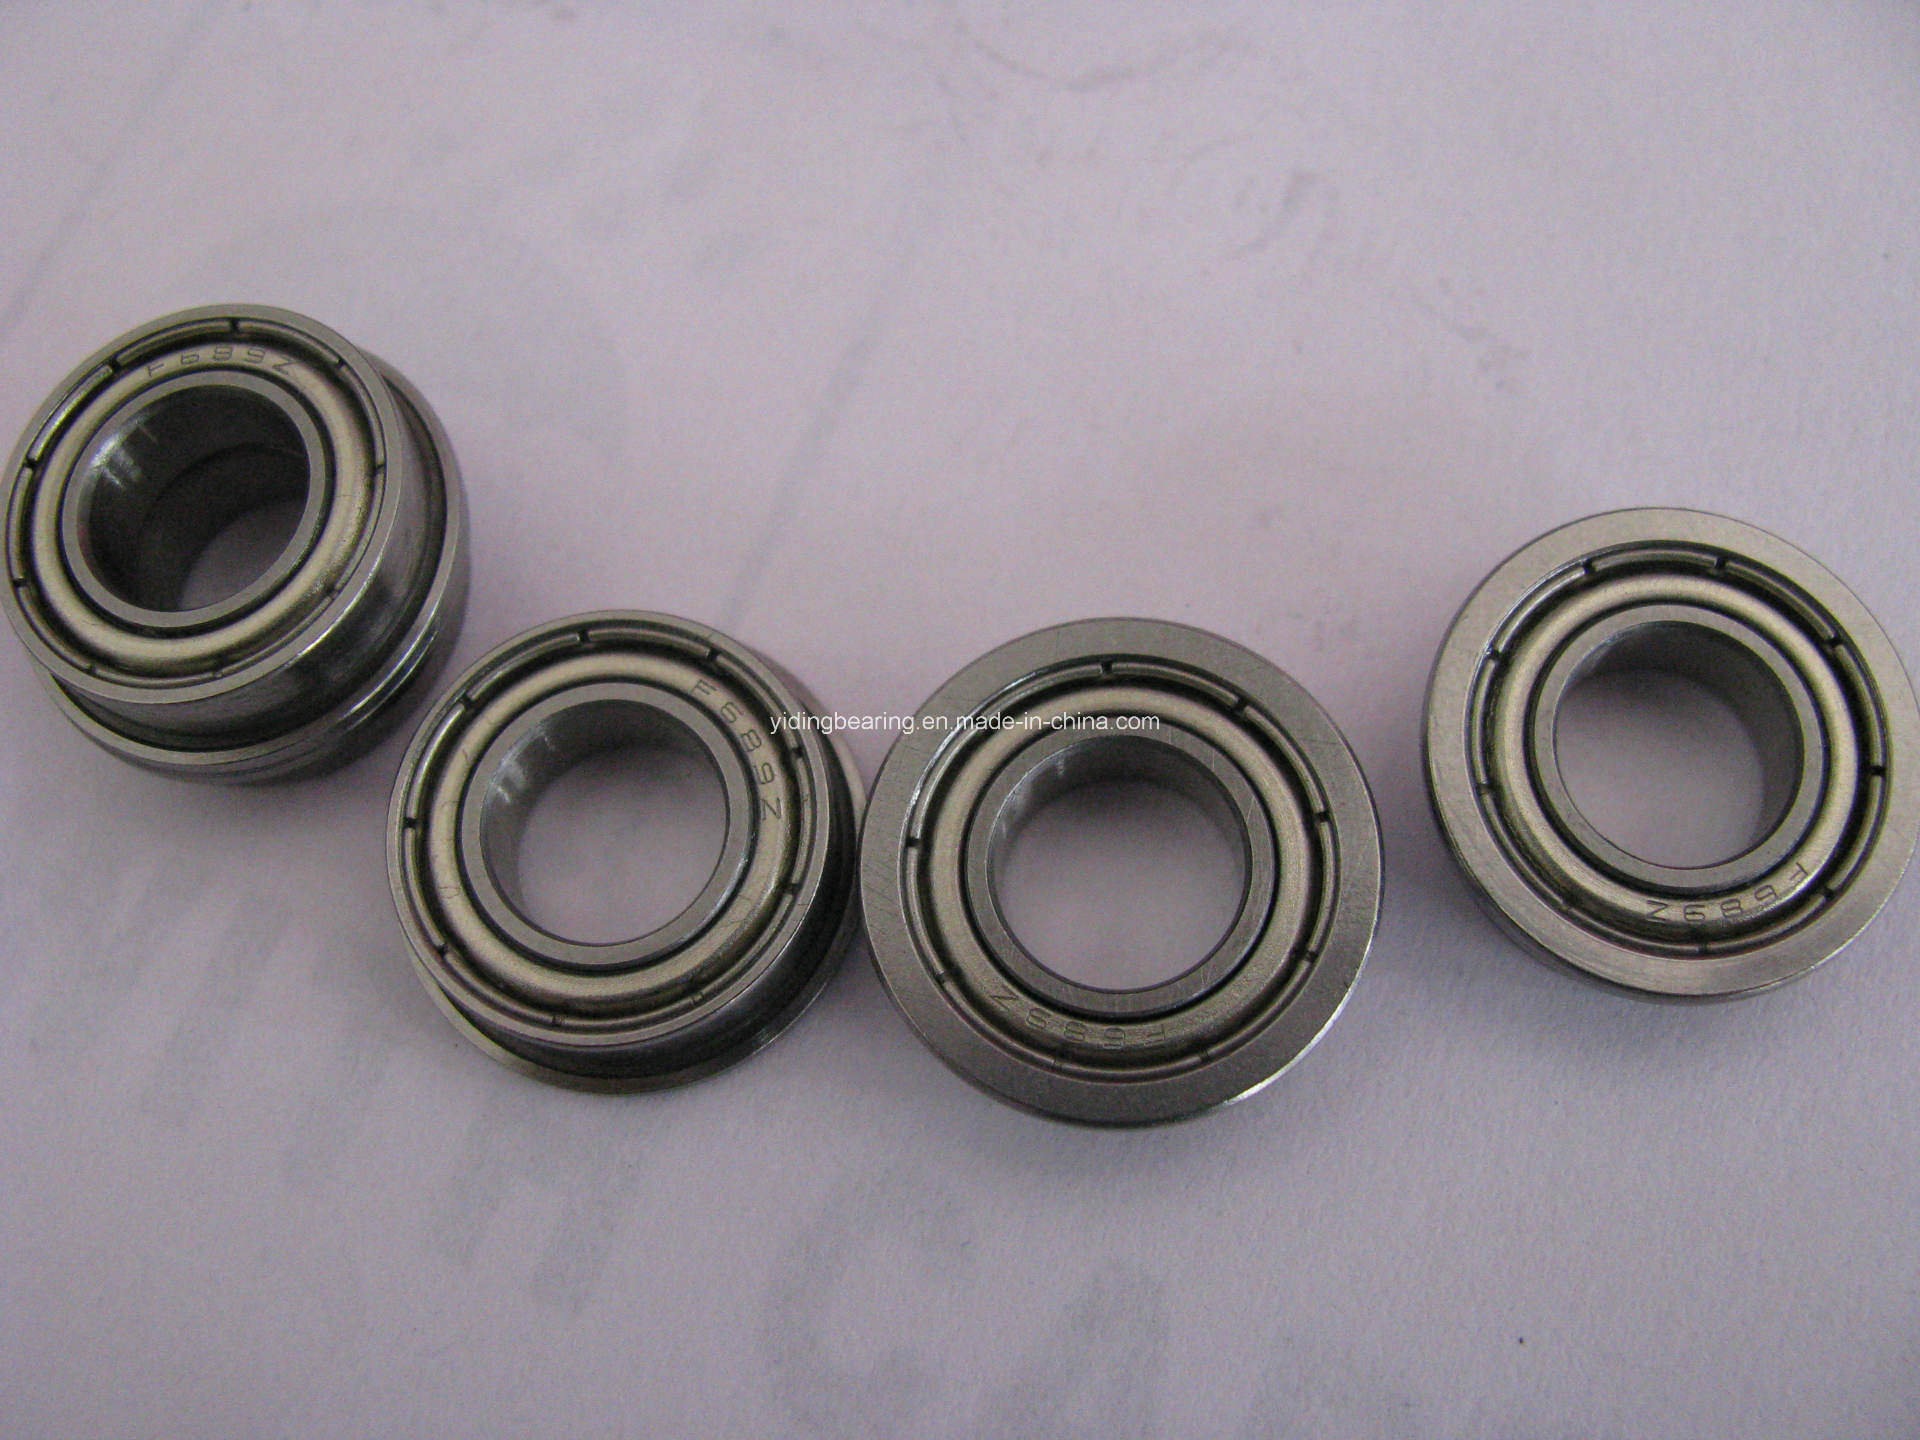 High Precision Flanged Deep Groove Ball Bearing F623zz